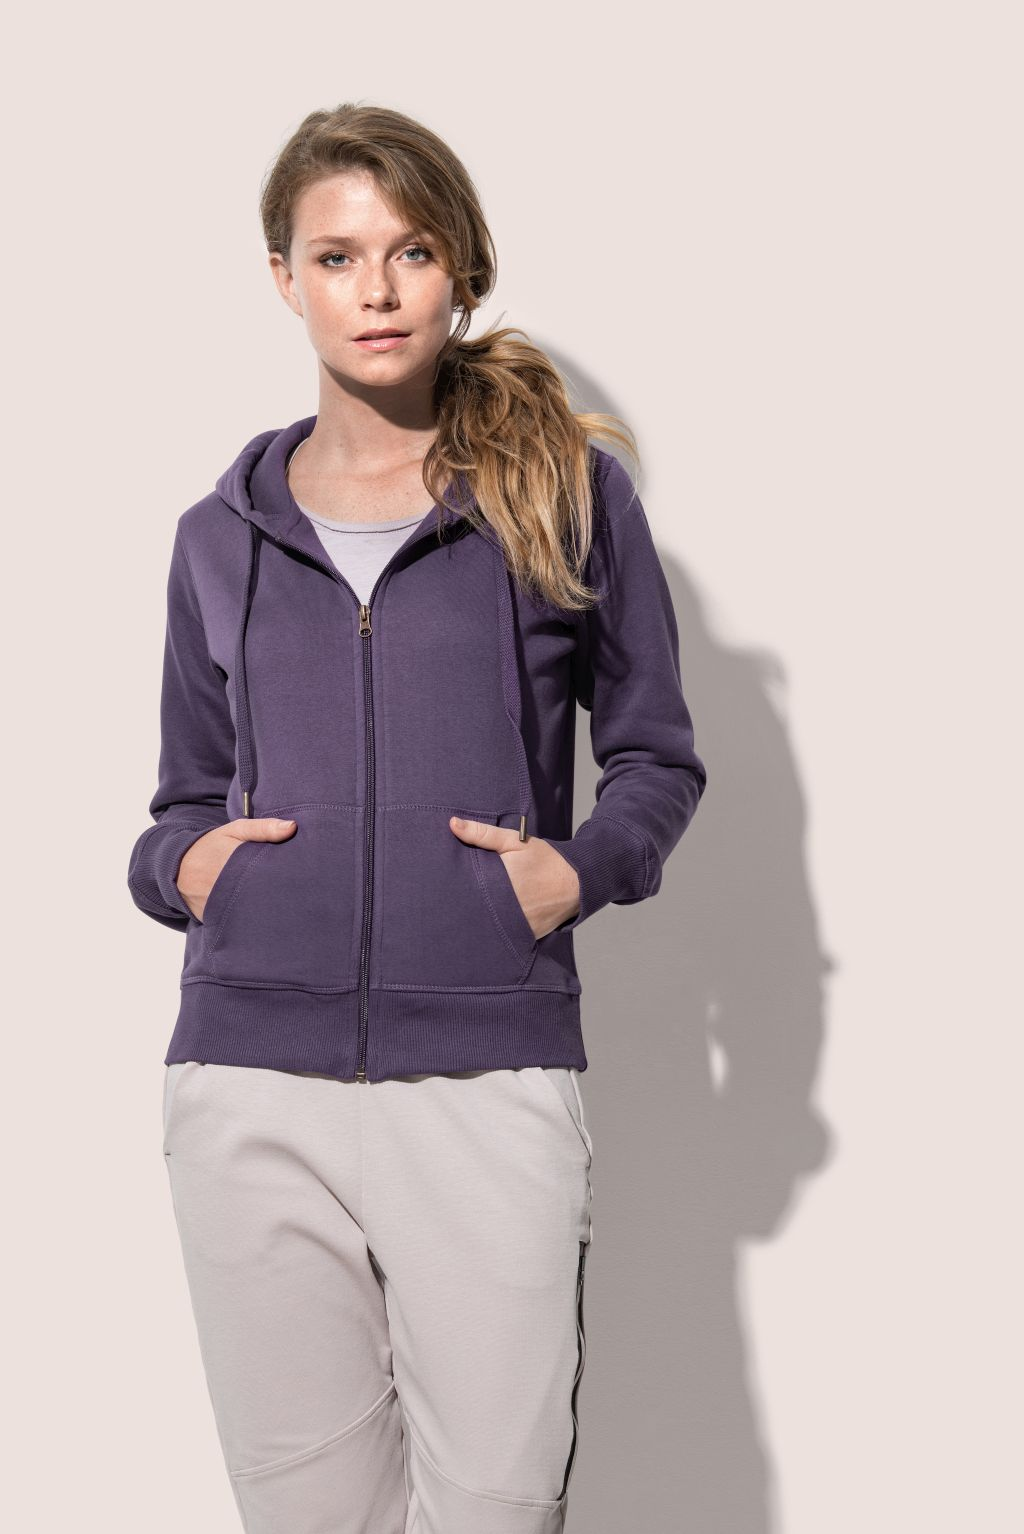 Pulover, DR, Active Sweatjacket Women, 270 gr